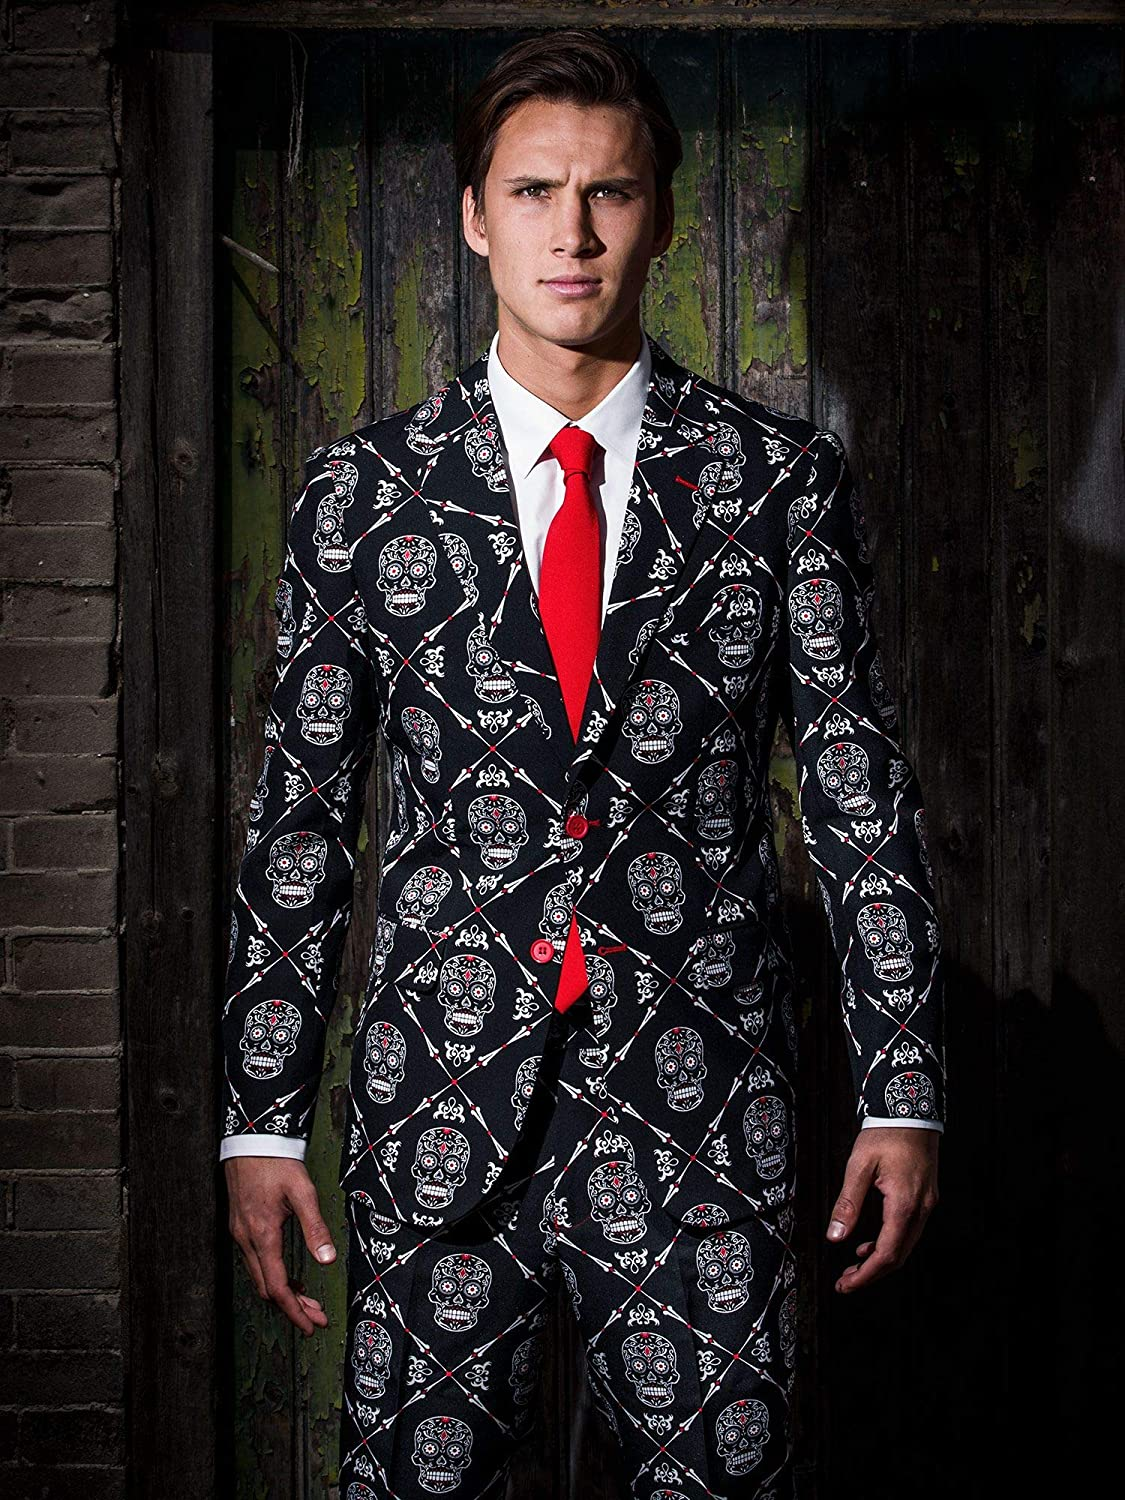 OppoSuits Halloween Jackets for Men in Different Prints Includes Stylish Blazer